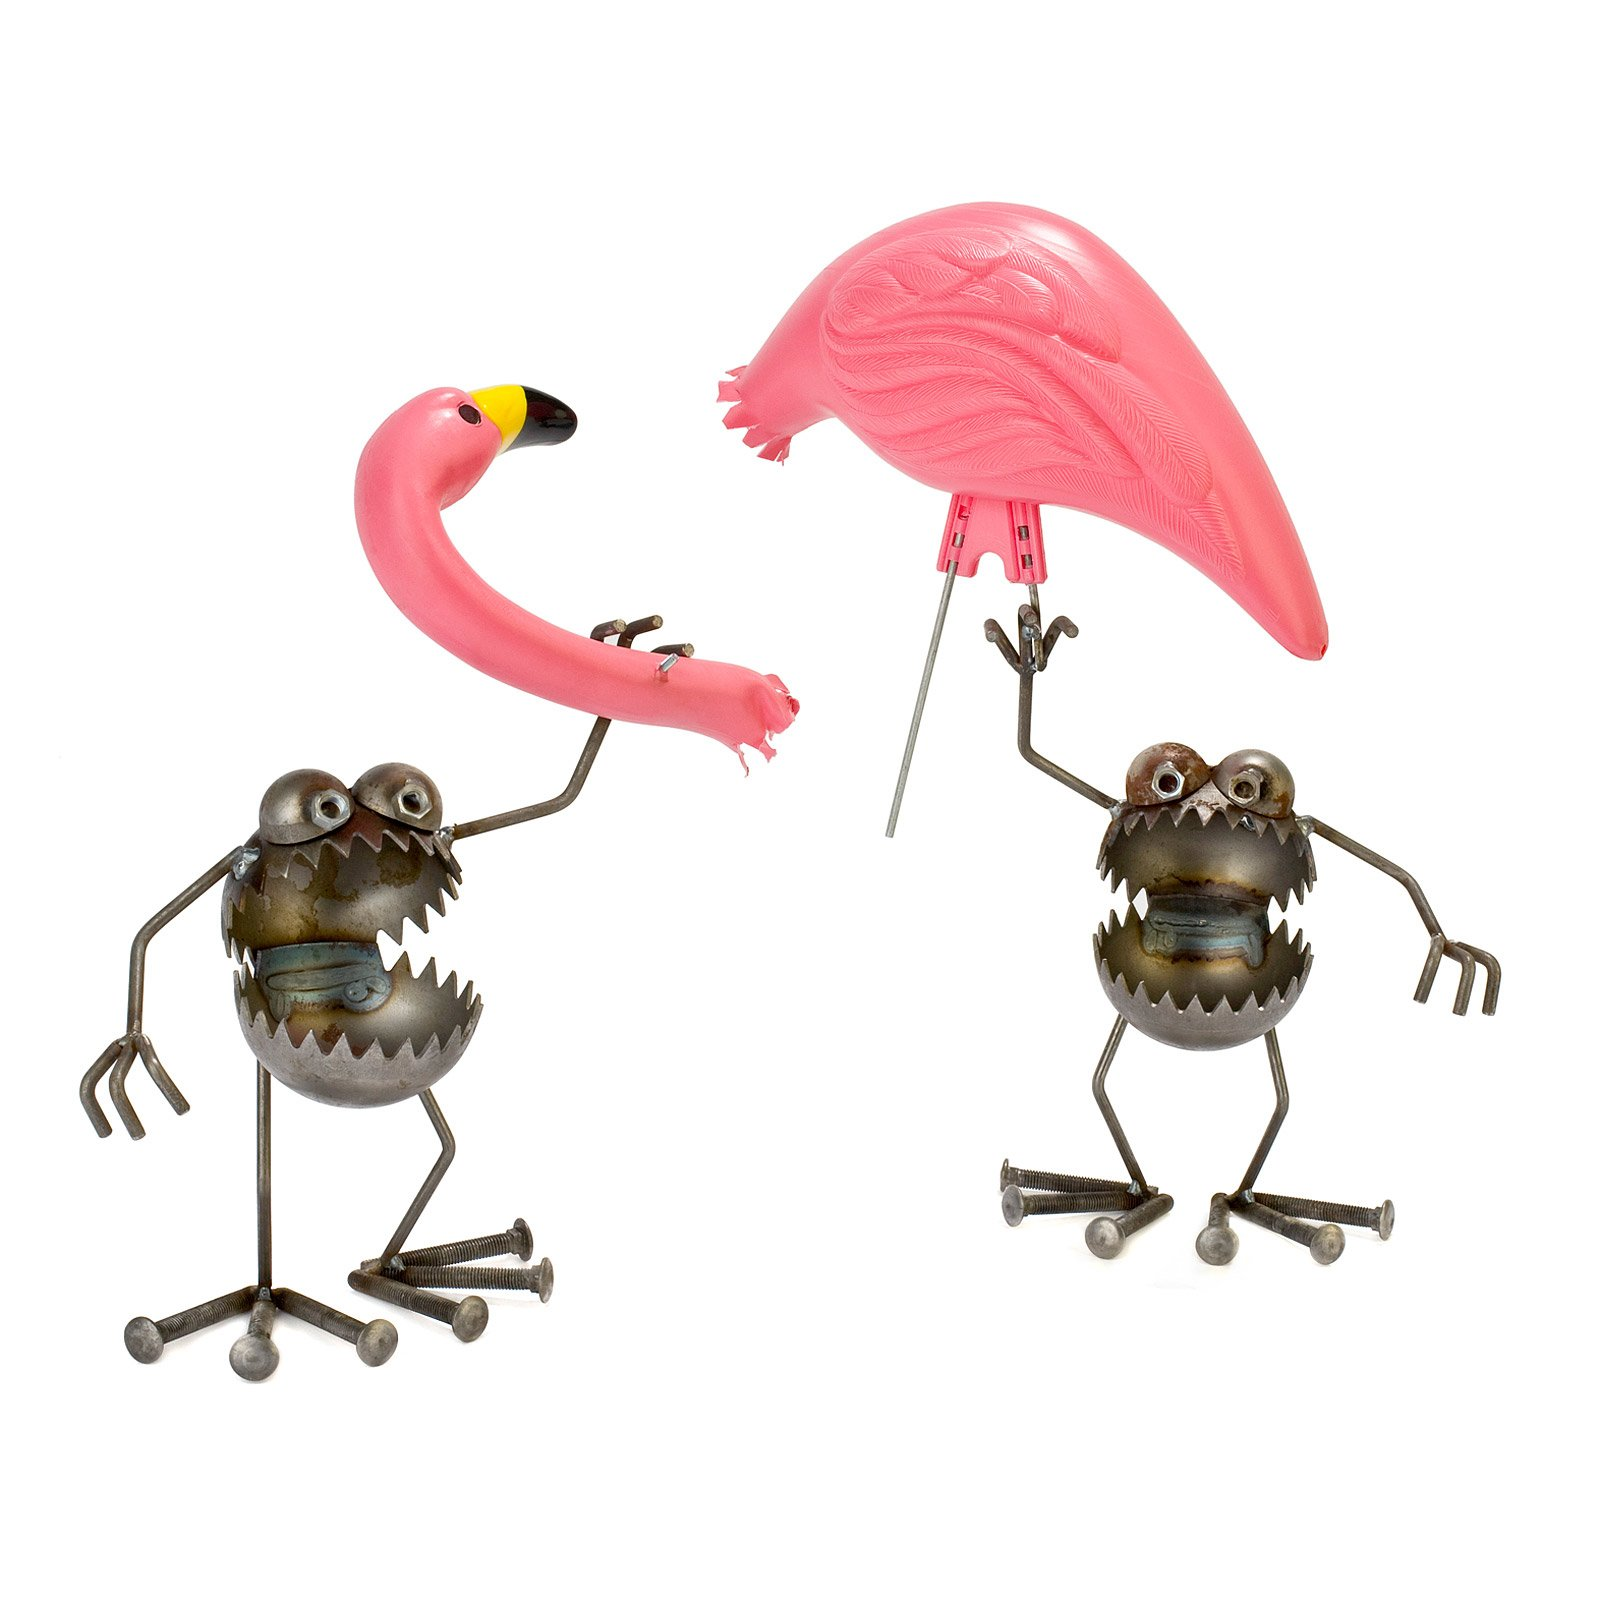 Flamingo garden ornament - Flamingo Away Sculpture 1 Thumbnail